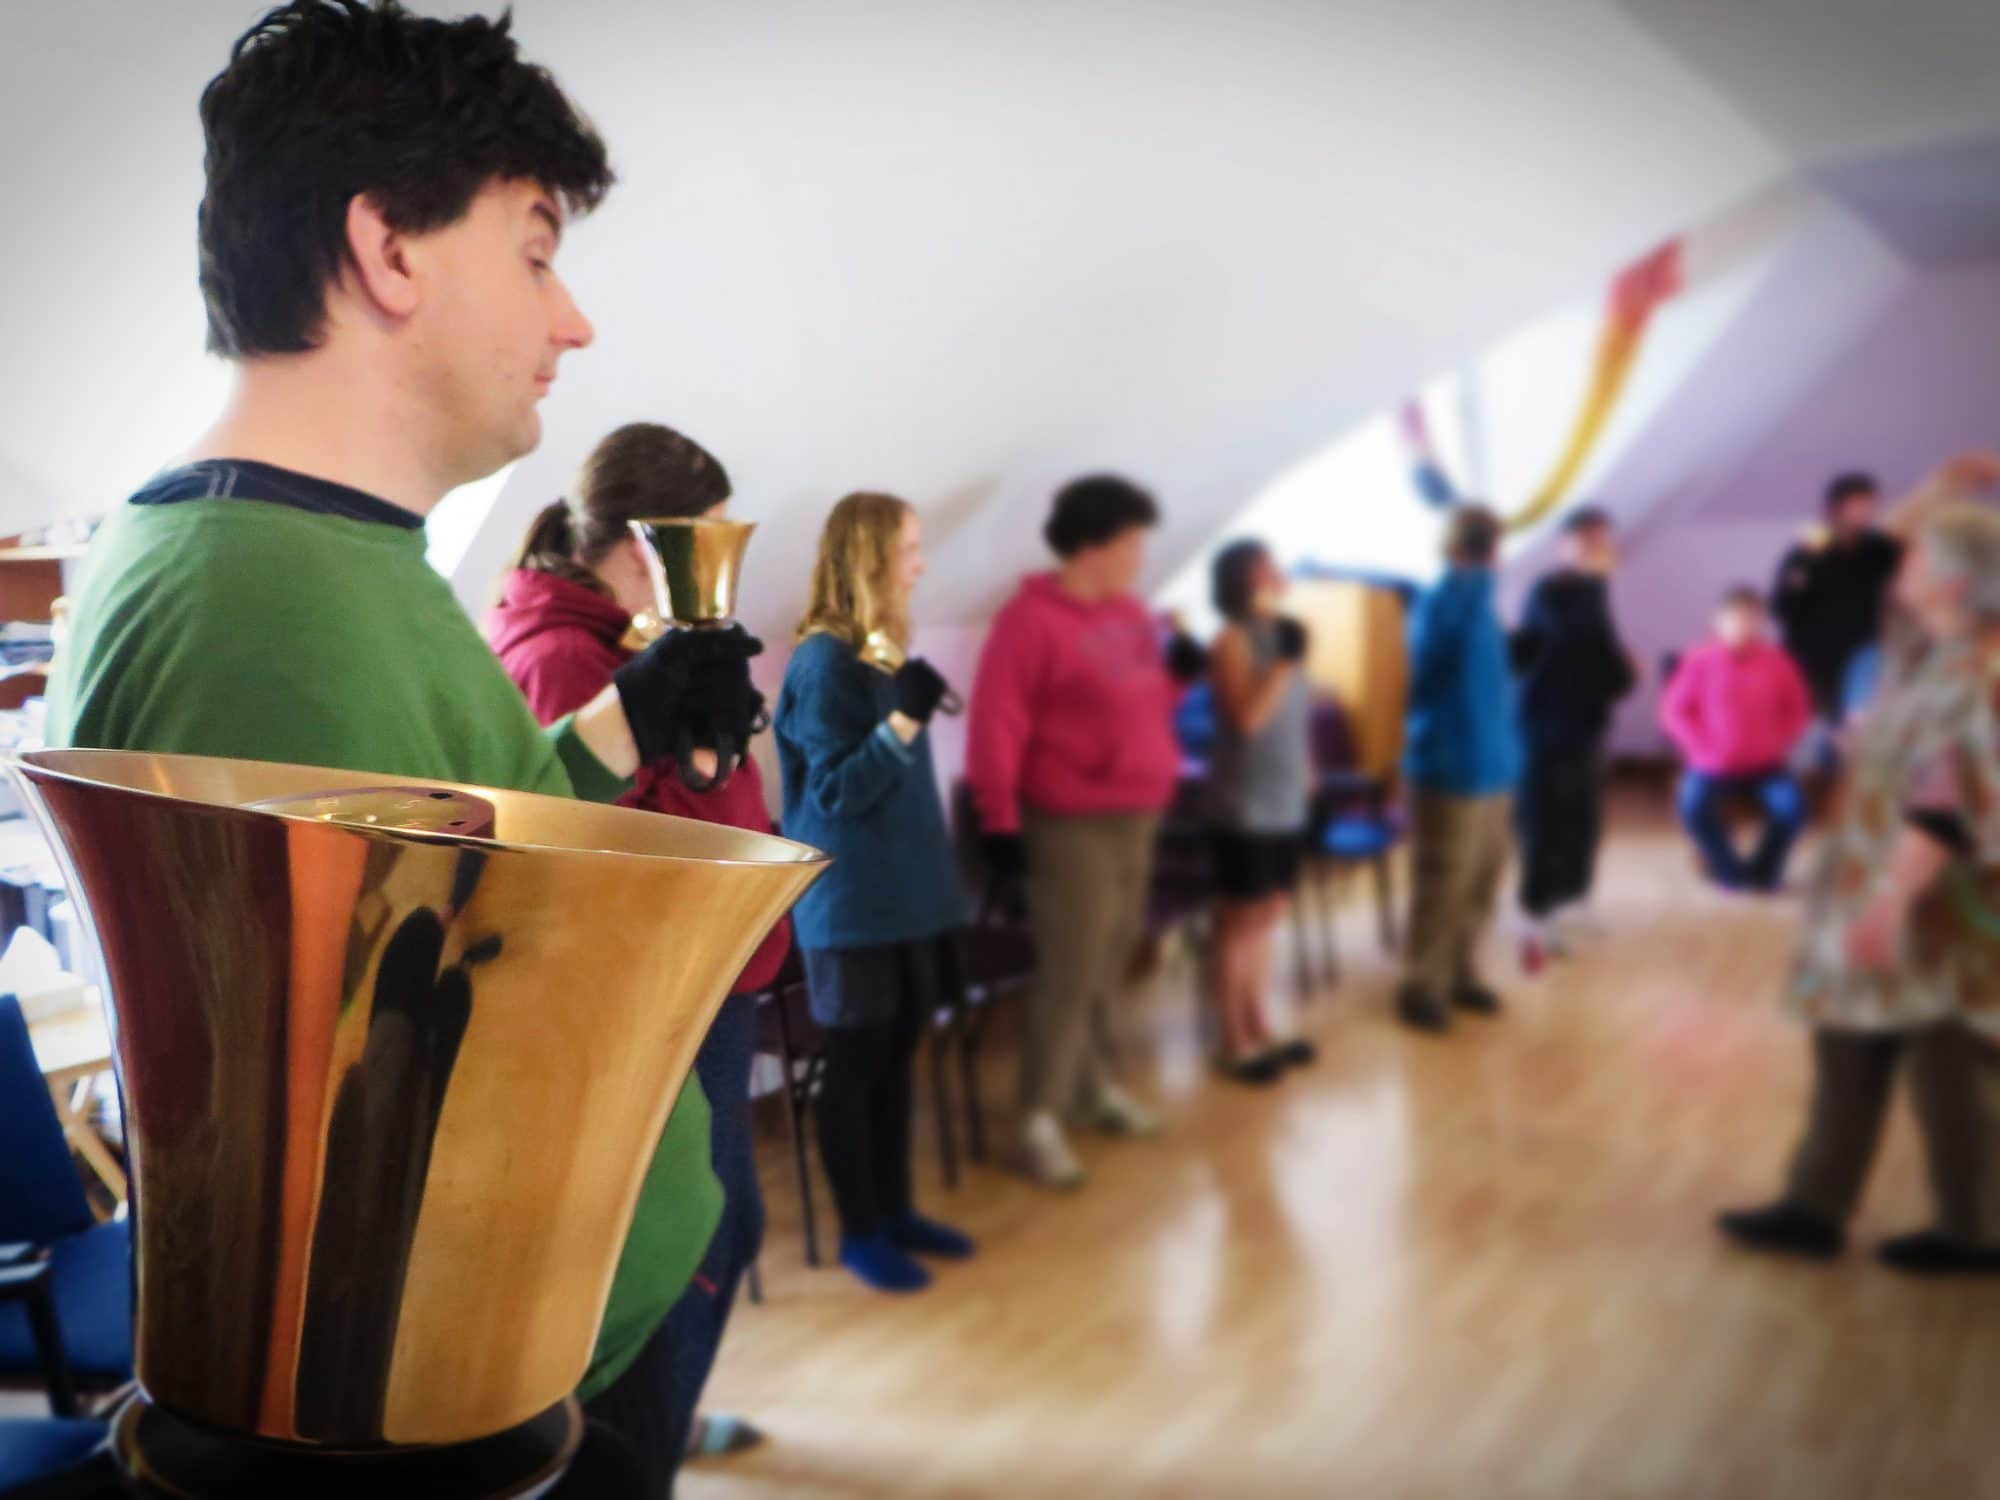 A handbell choir stands in a line, ready to play their bells.